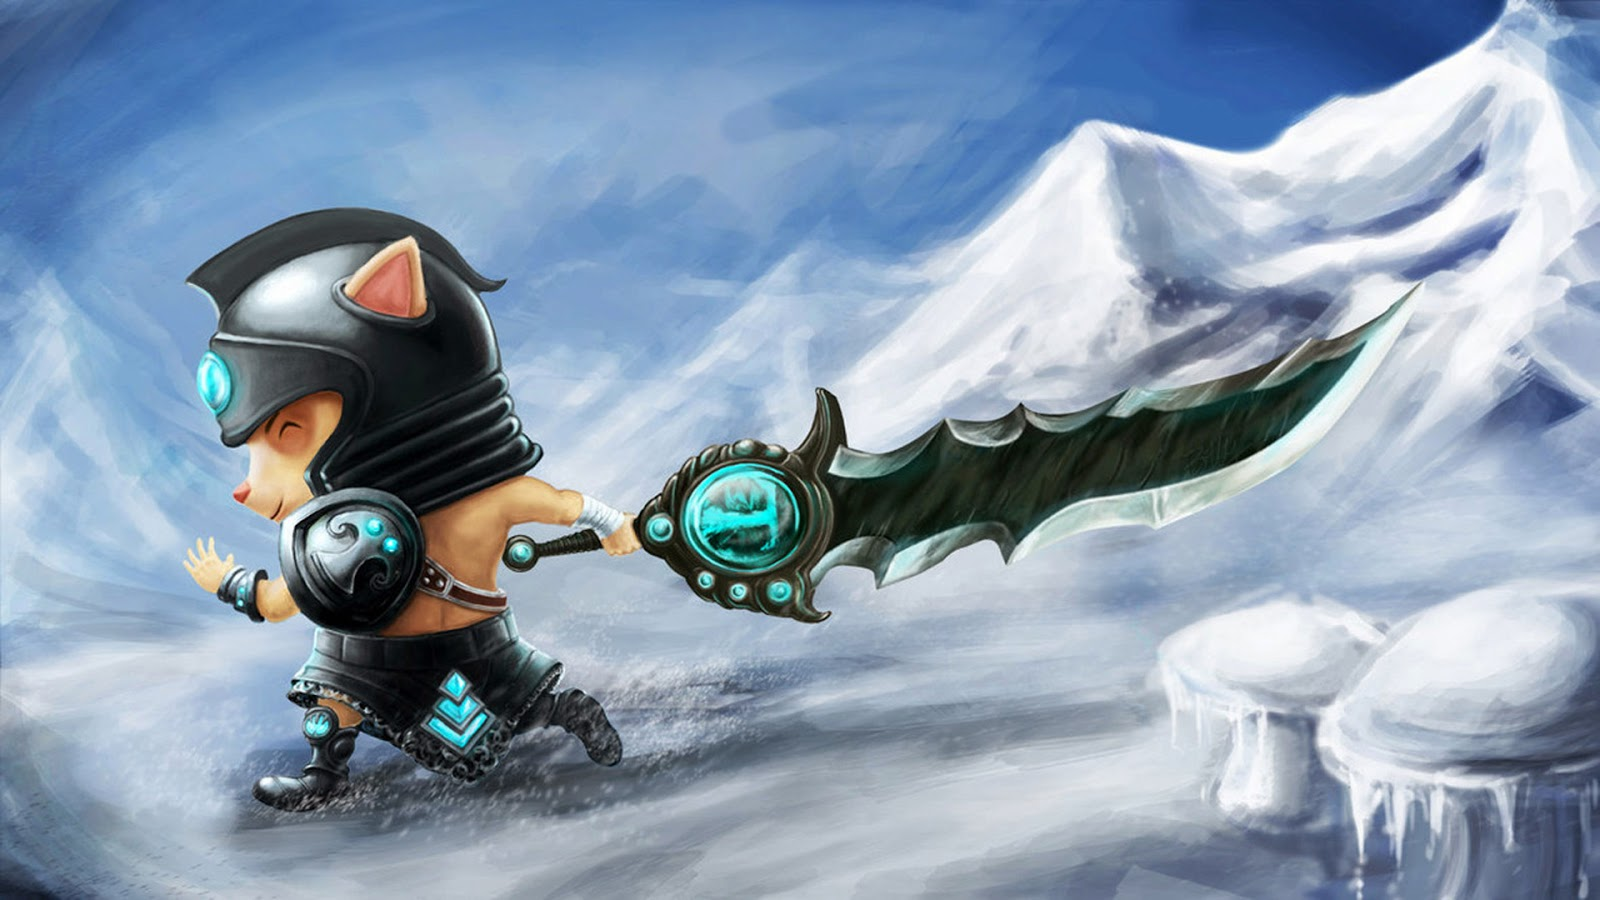 teemo tryndamere league of legends lol champion wallpaper hd 1920x1080 h7